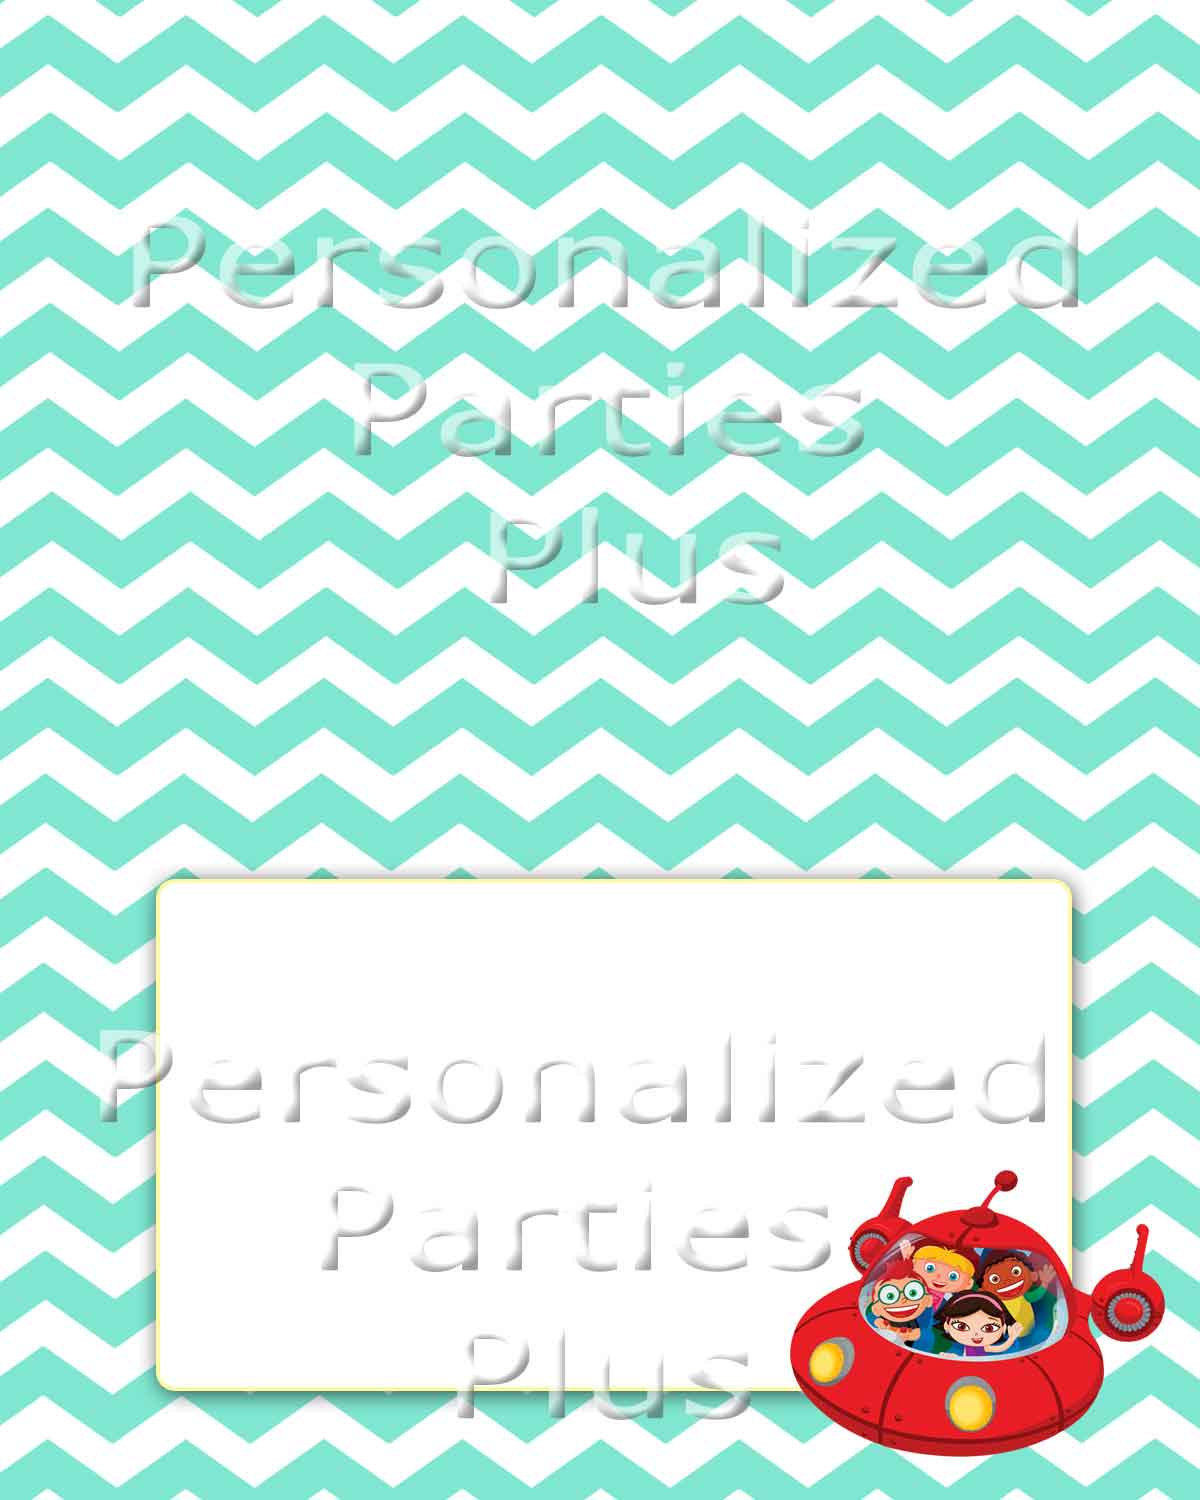 LIttle Einsteins food tents for Birthday Party in aqua chevron print: Instant Do